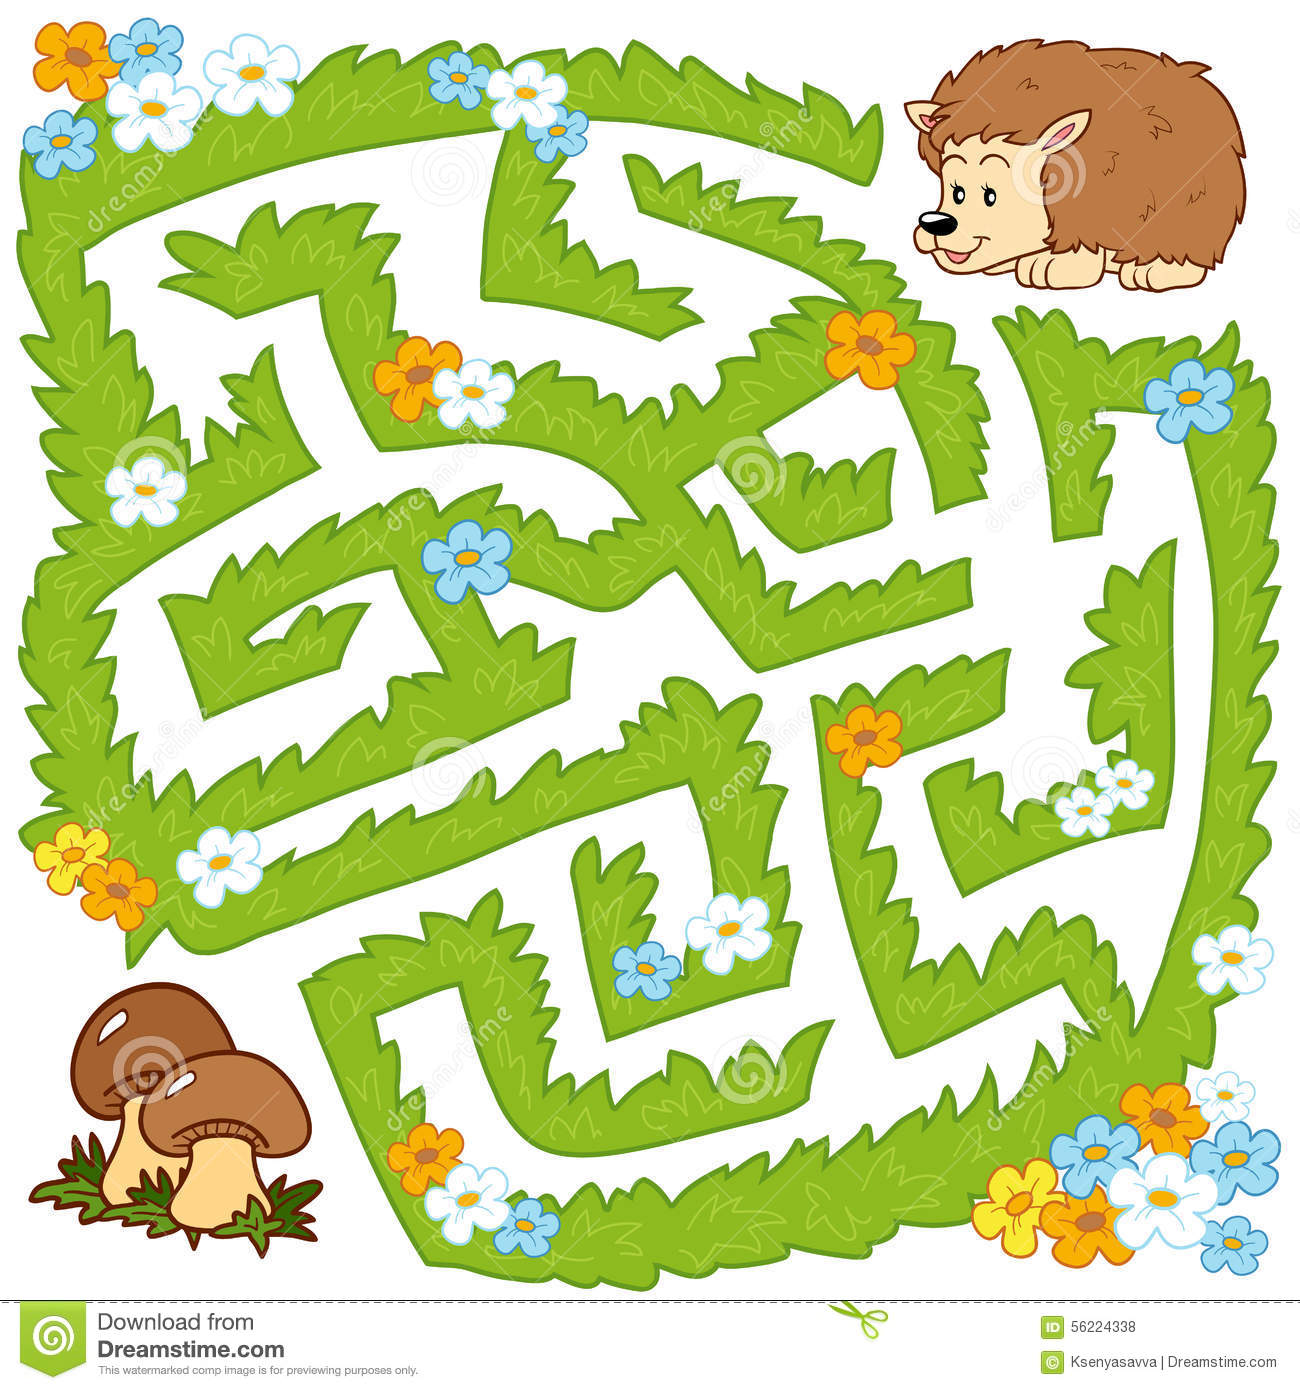 Maze Game Help Hedgehog To Find A Way To Mushrooms Stock